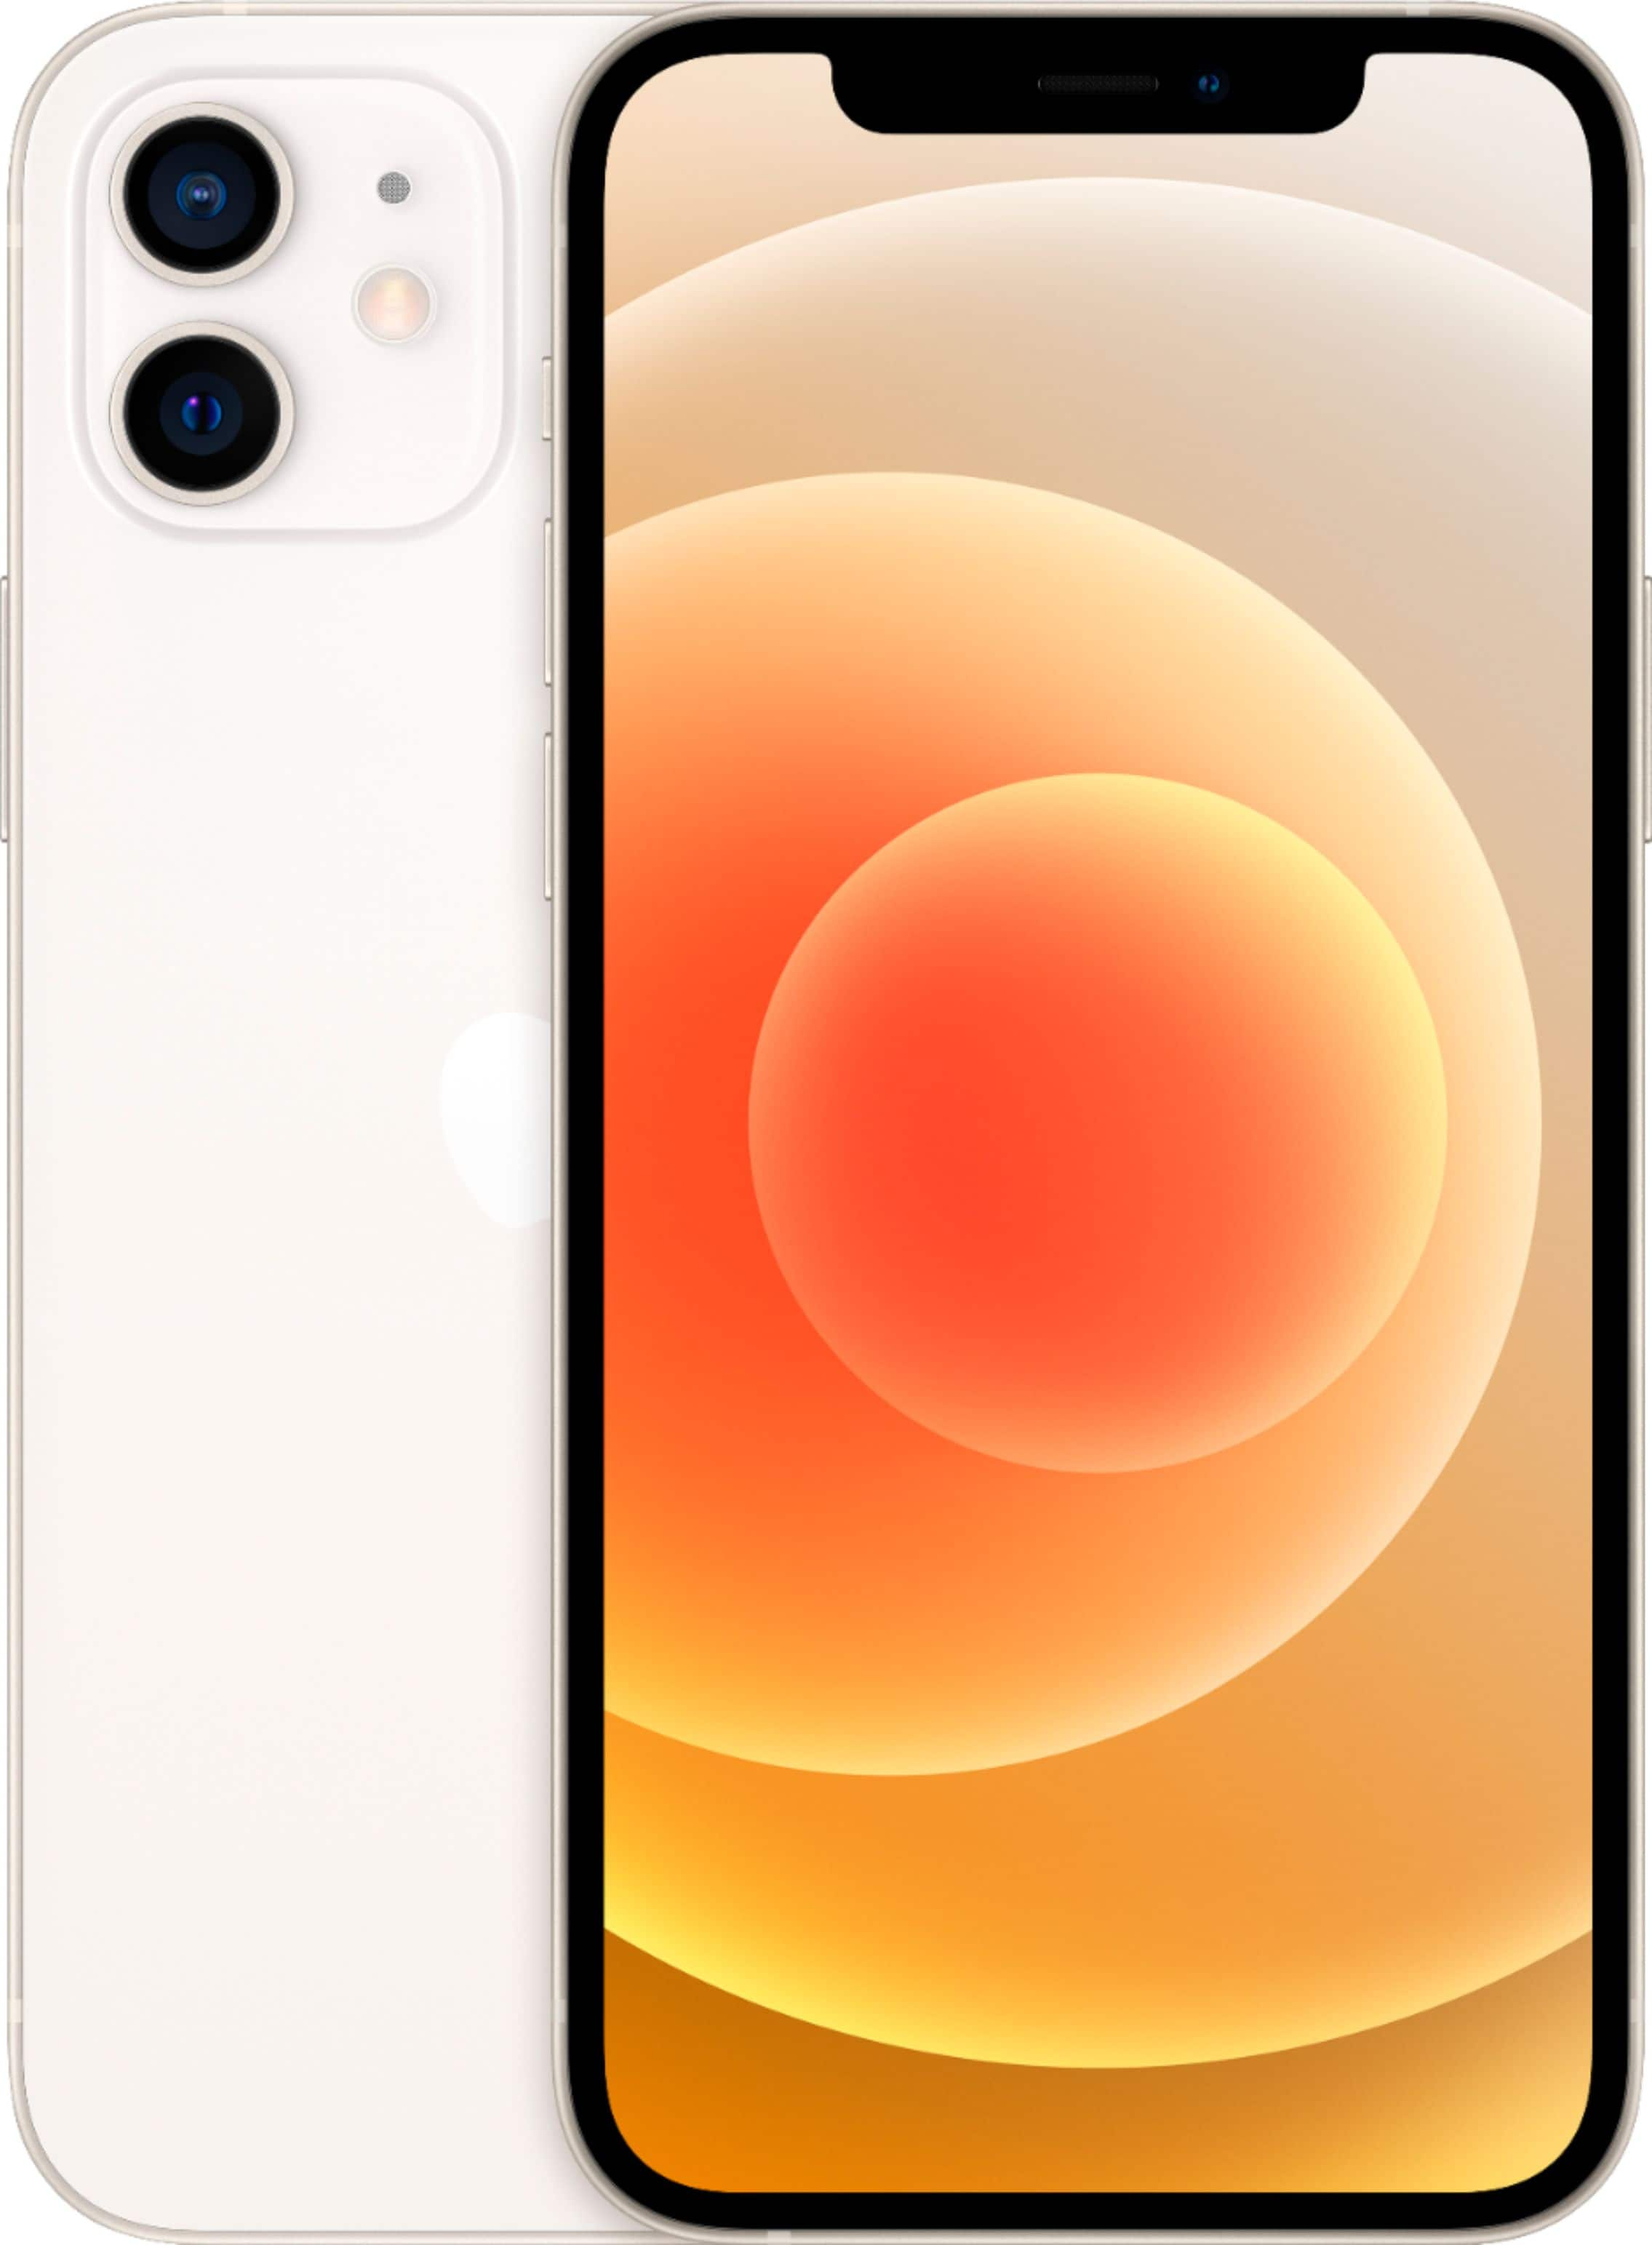 Visible Offer: 64GB Apple iPhone 12 + $200 Gift Card ($600)